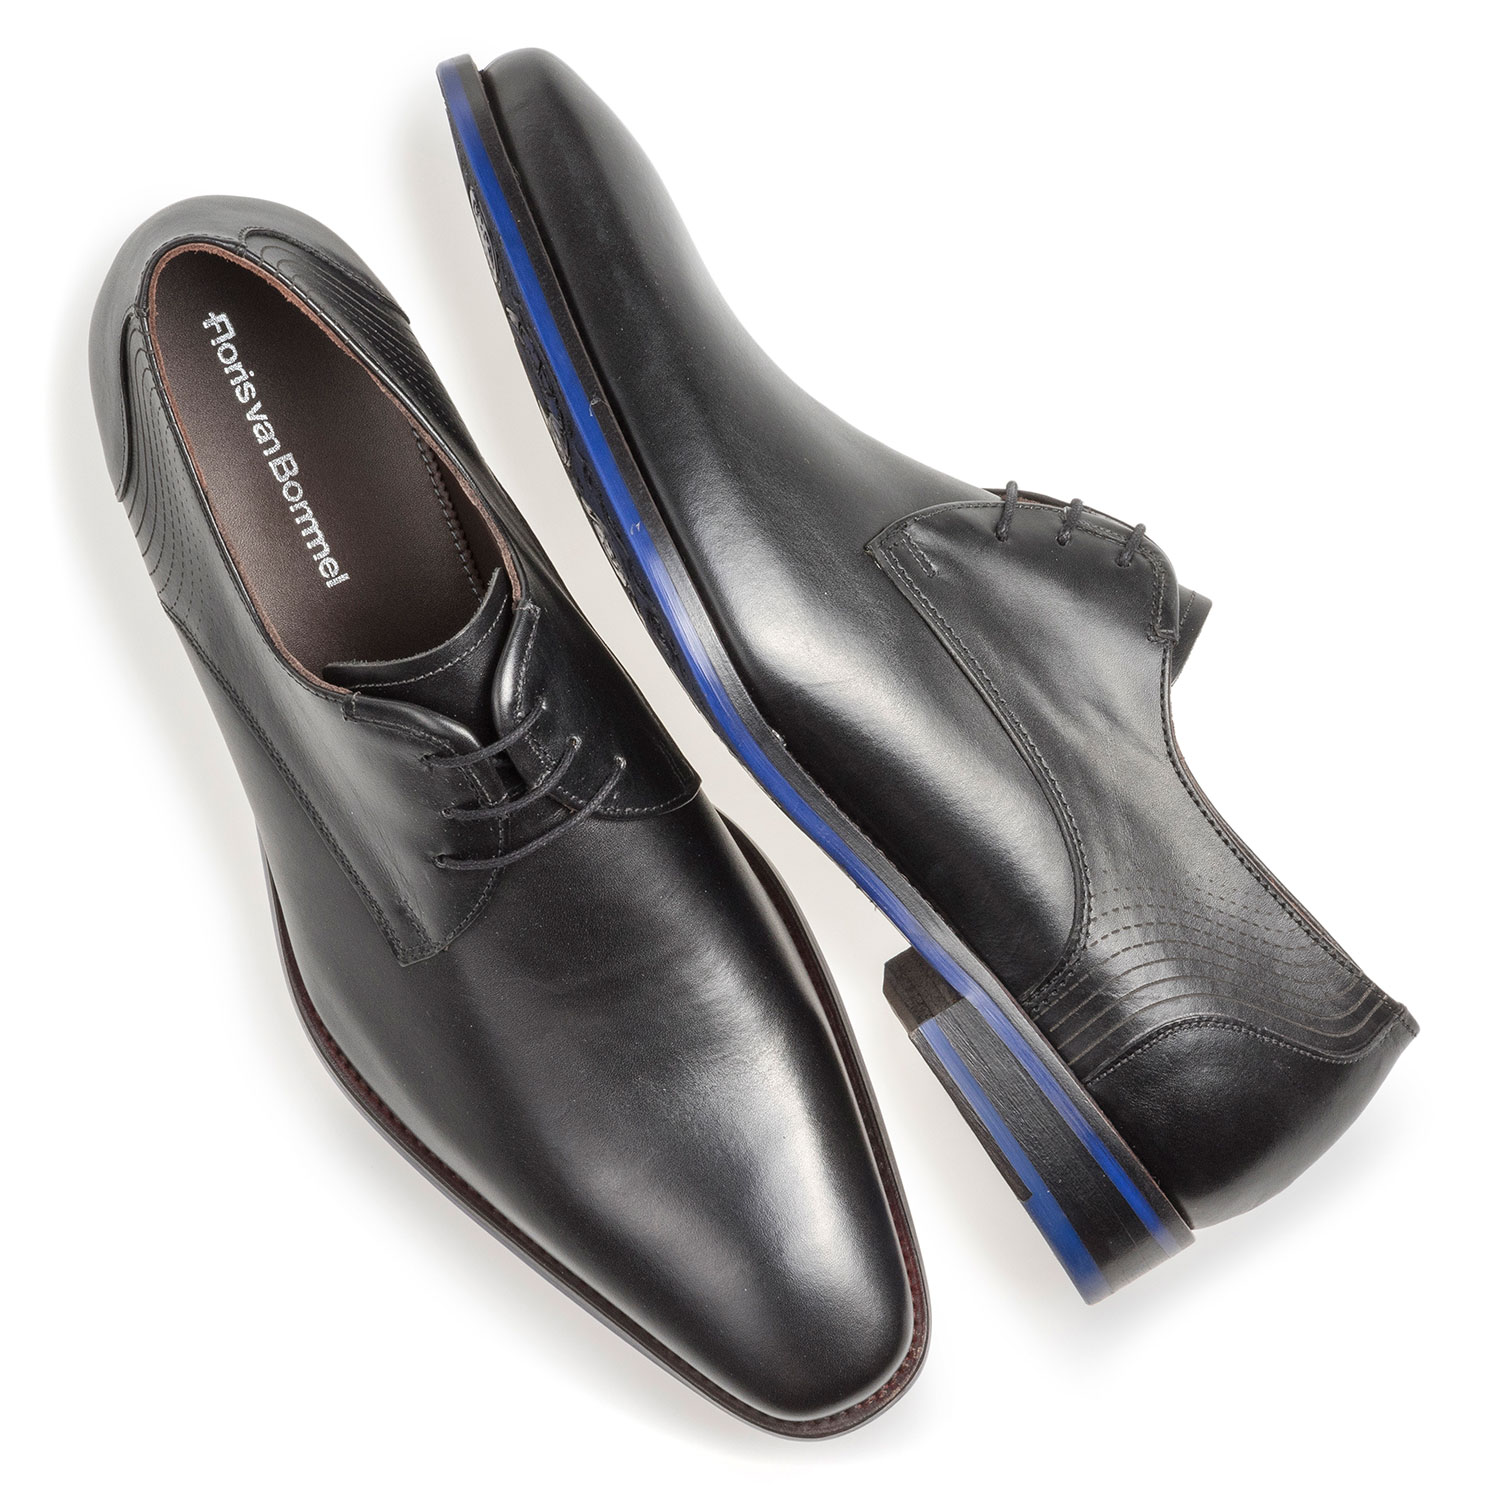 18493/01 - Black calf leather lace shoe